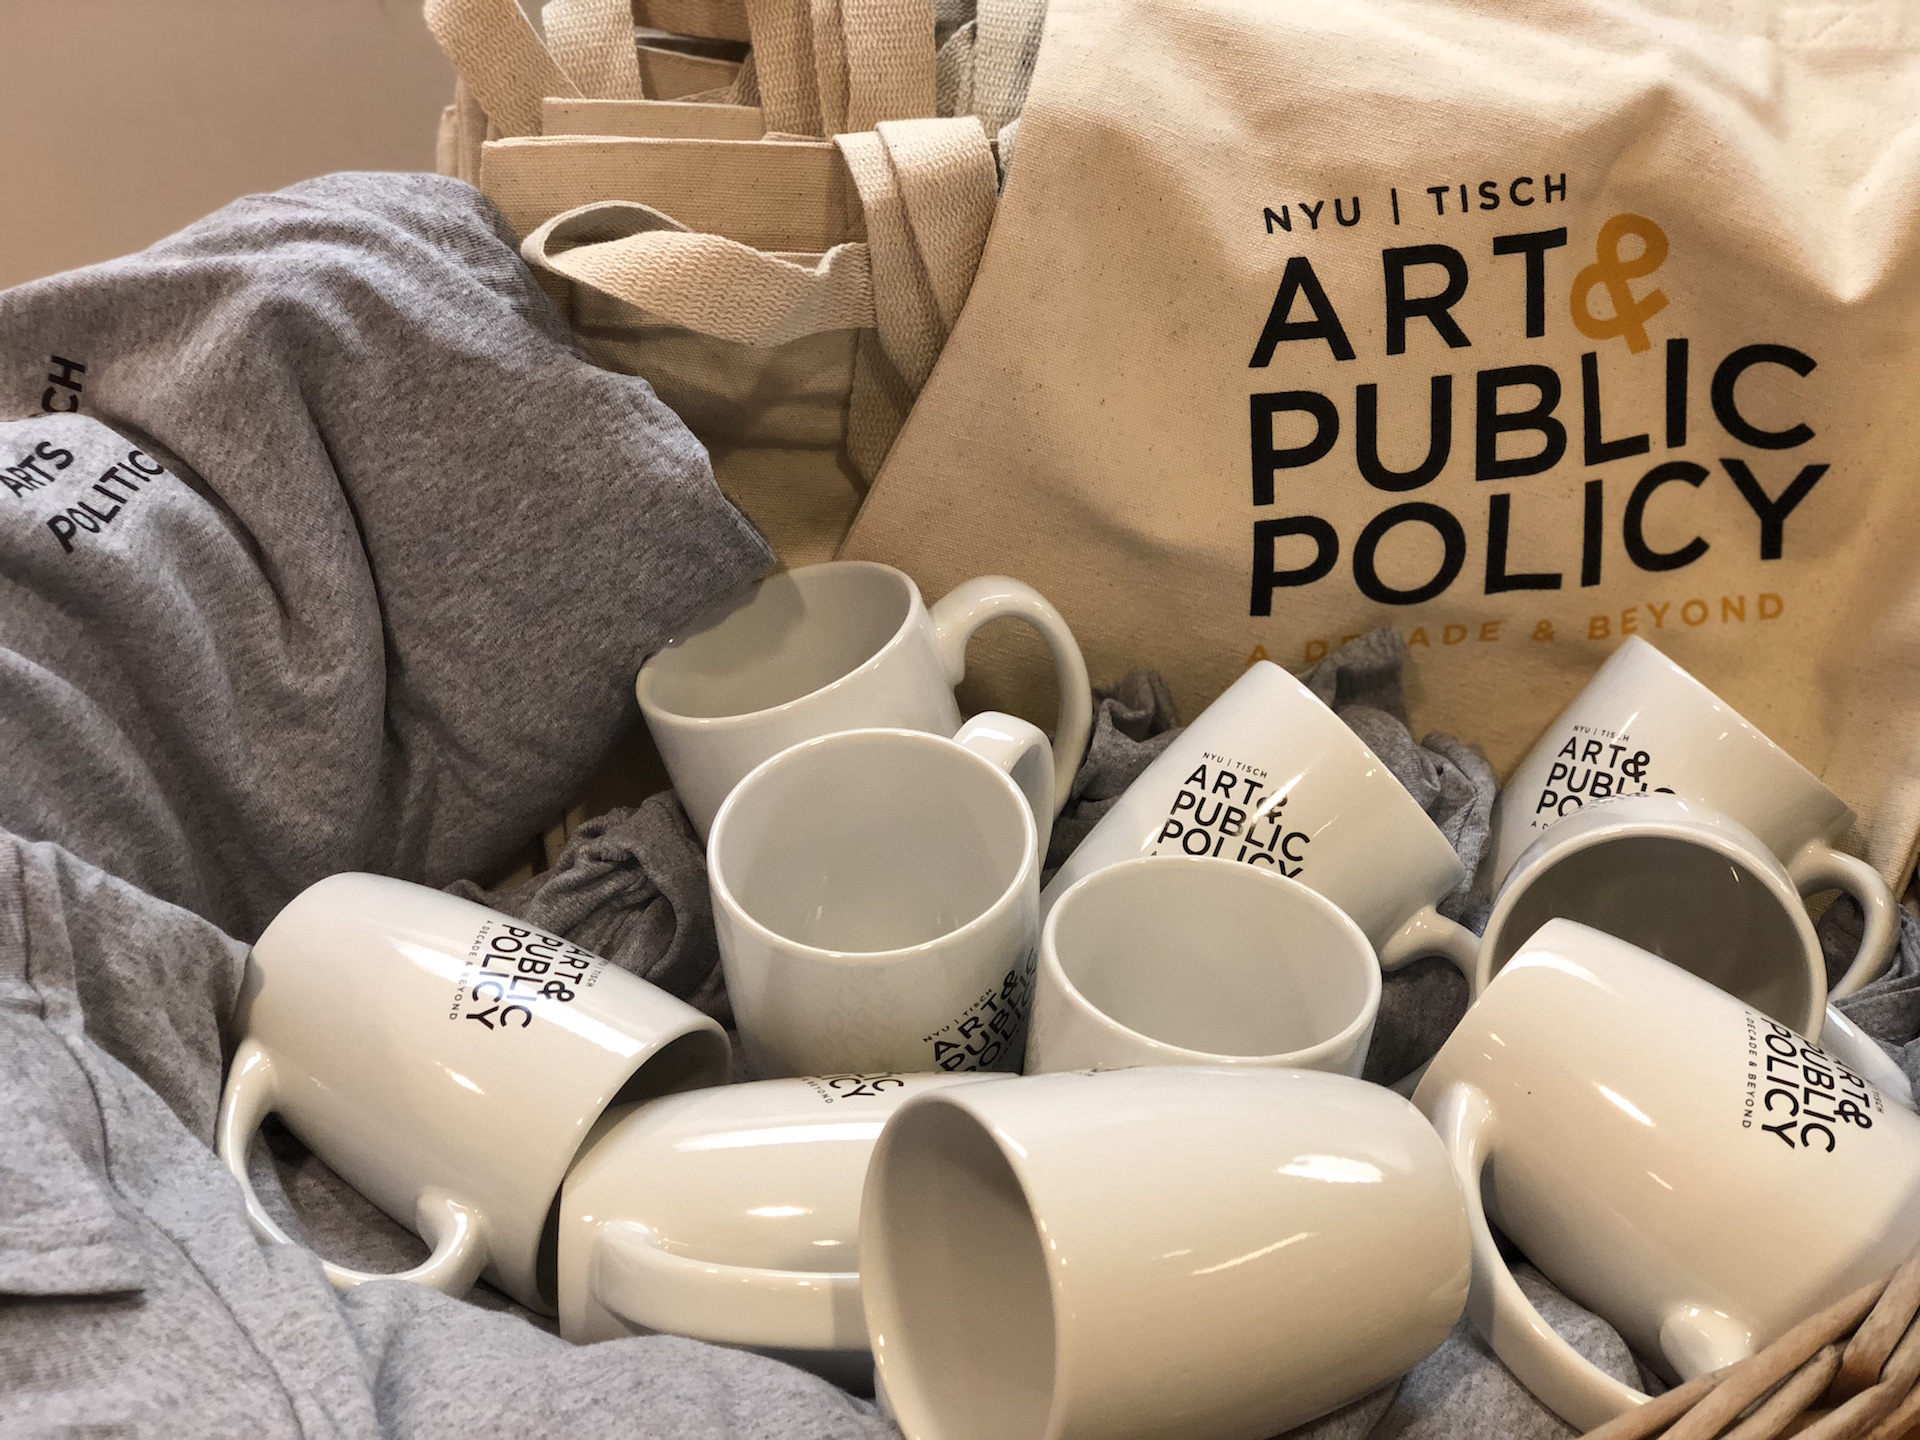 Art & Public Policy mugs, t-shirts, and tote bags